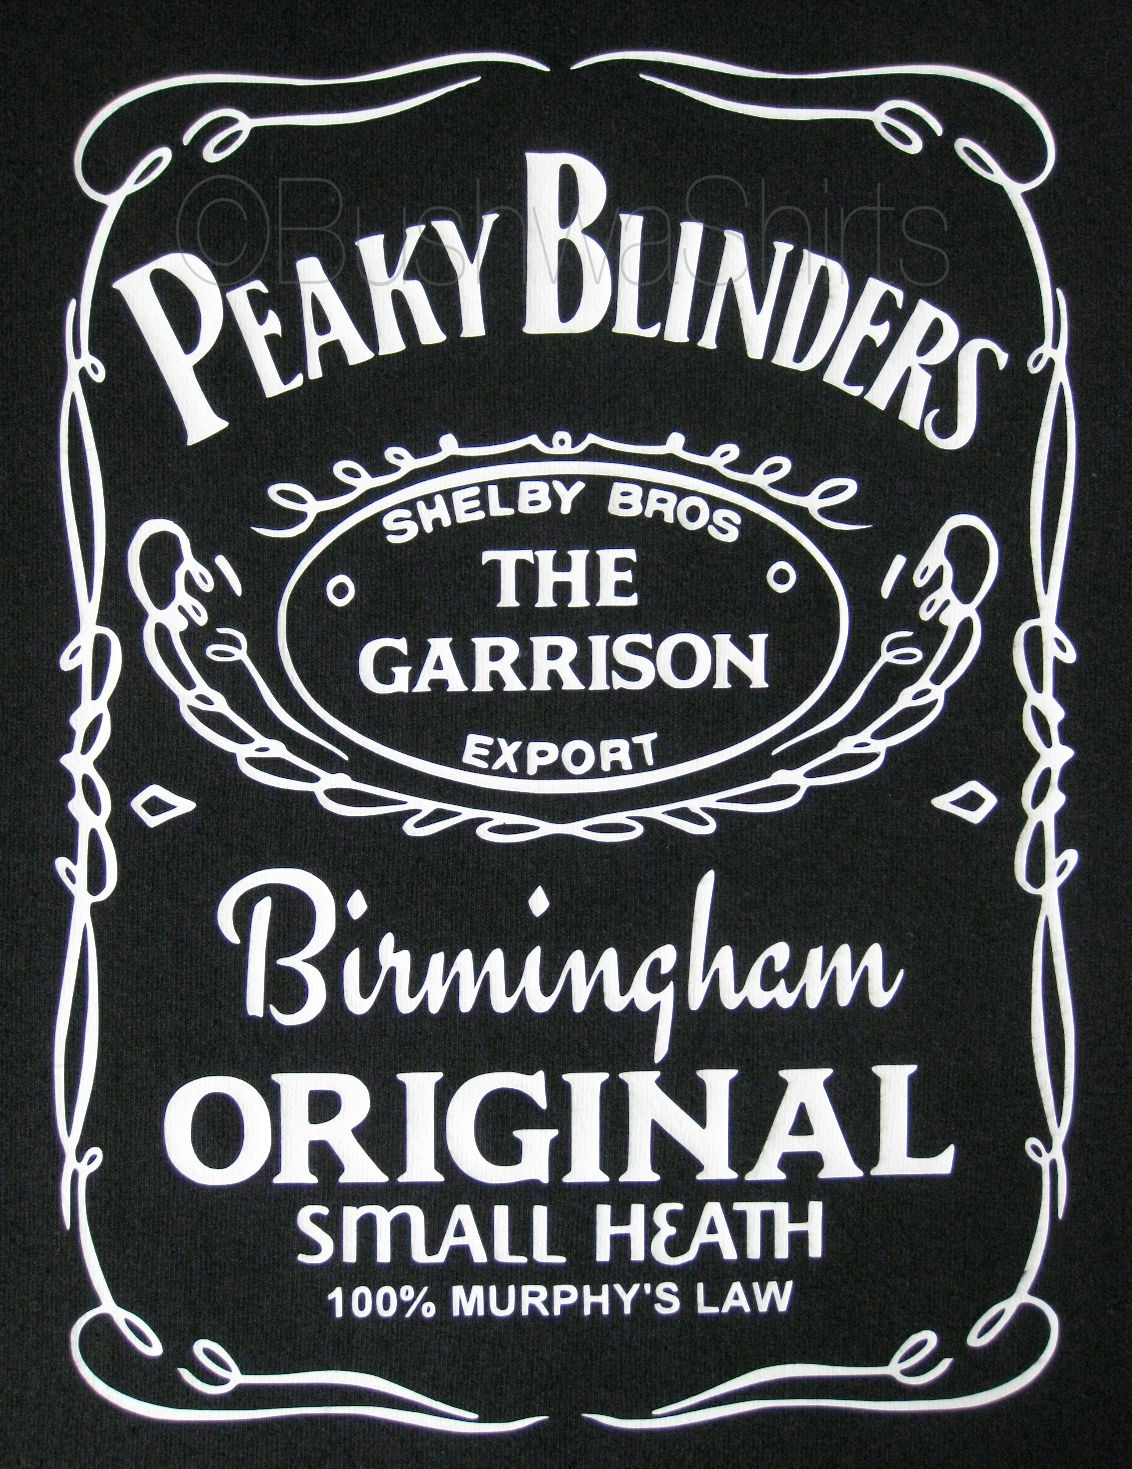 23ffa29c Peaky Blinders / The Garrison Inspired T Shirt Top Mens Tee Great Gift  Cotton